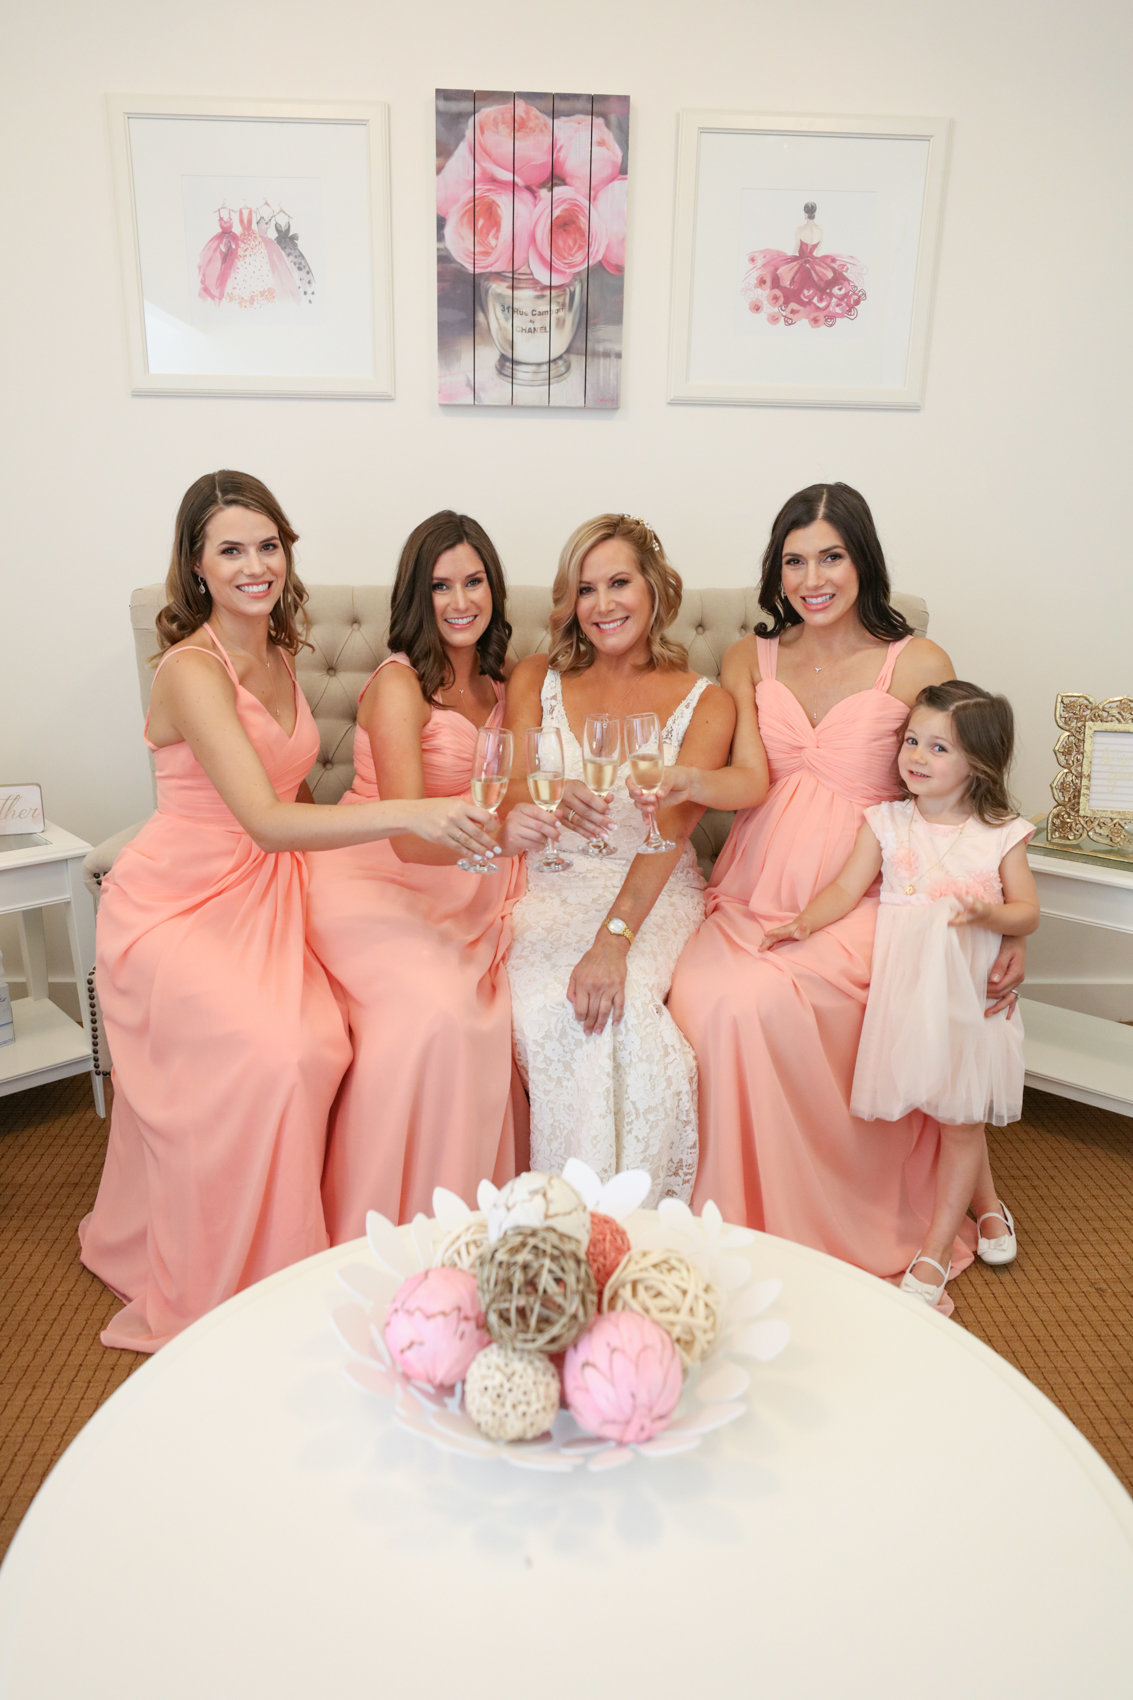 Deneffe studios wedding, portrait of bride with her bridesmaids inside